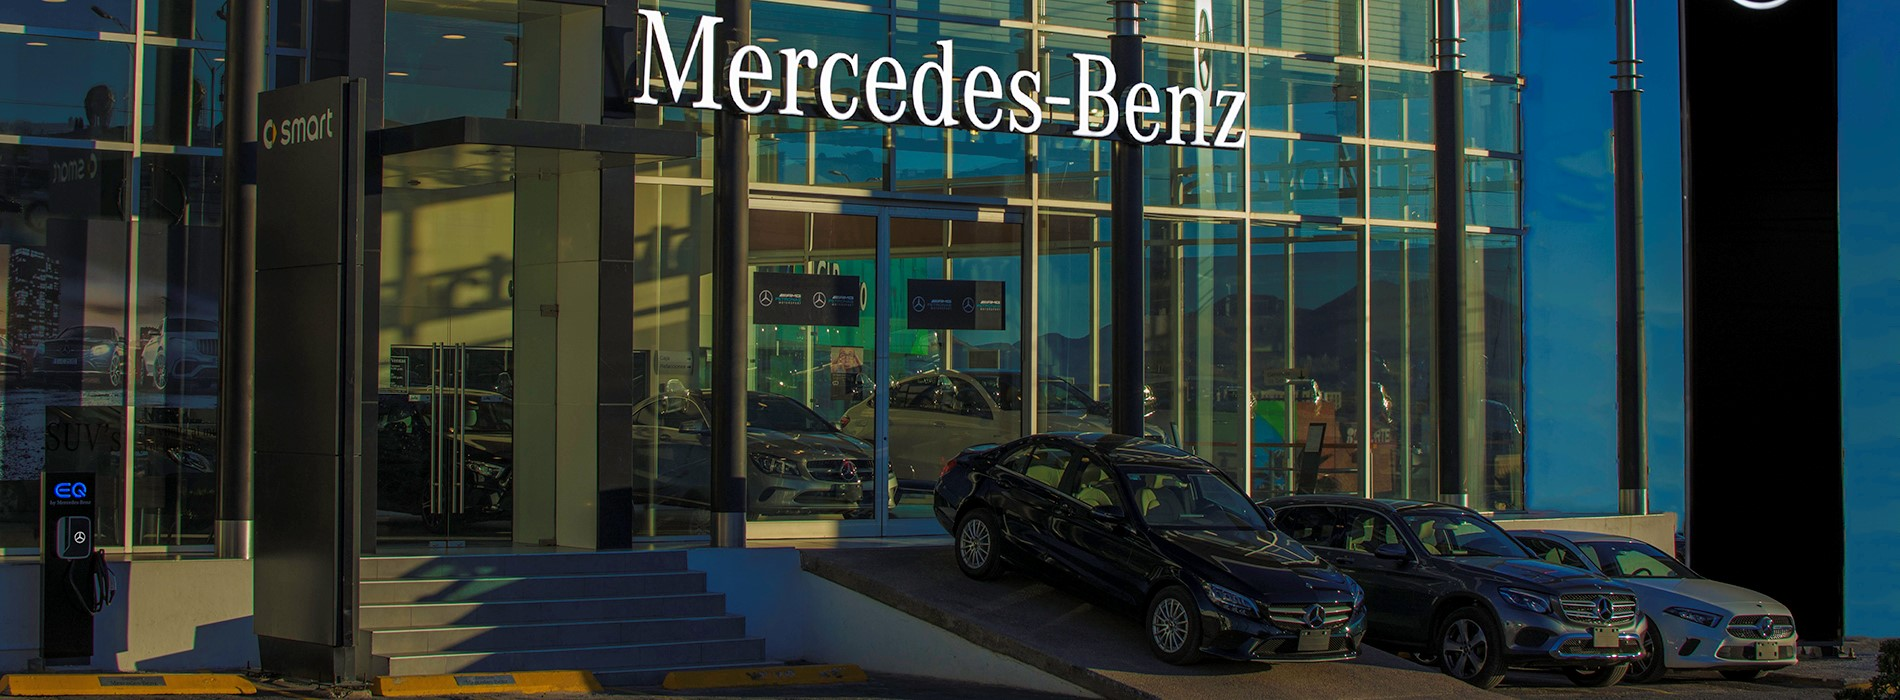 Mercedes-Benz Touché